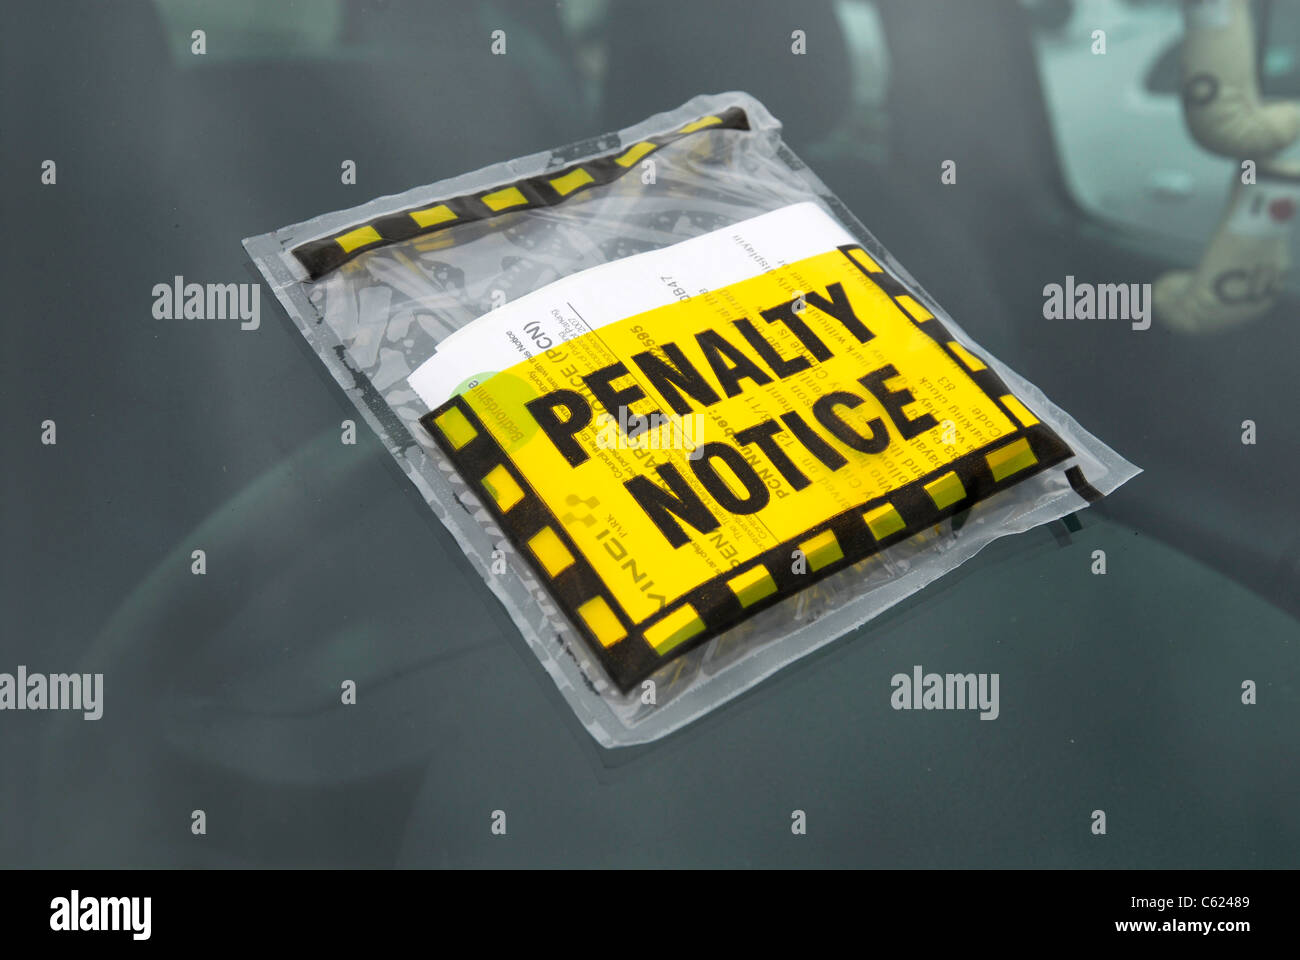 A penalty notice for parking on a car in Dunstable, Bedfordshire, UK, 2011. - Stock Image